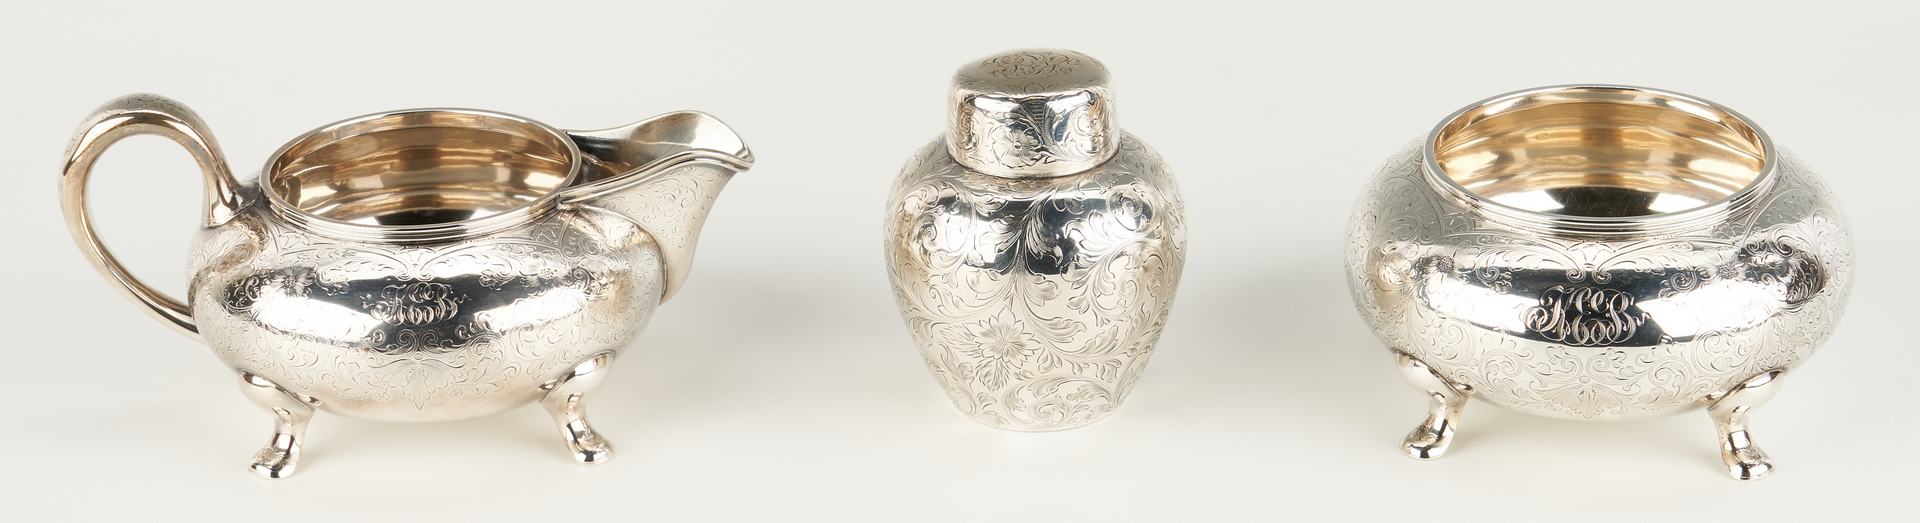 Lot 75: BSC Co. Sterling Tea Set inc. Kettle & Stand